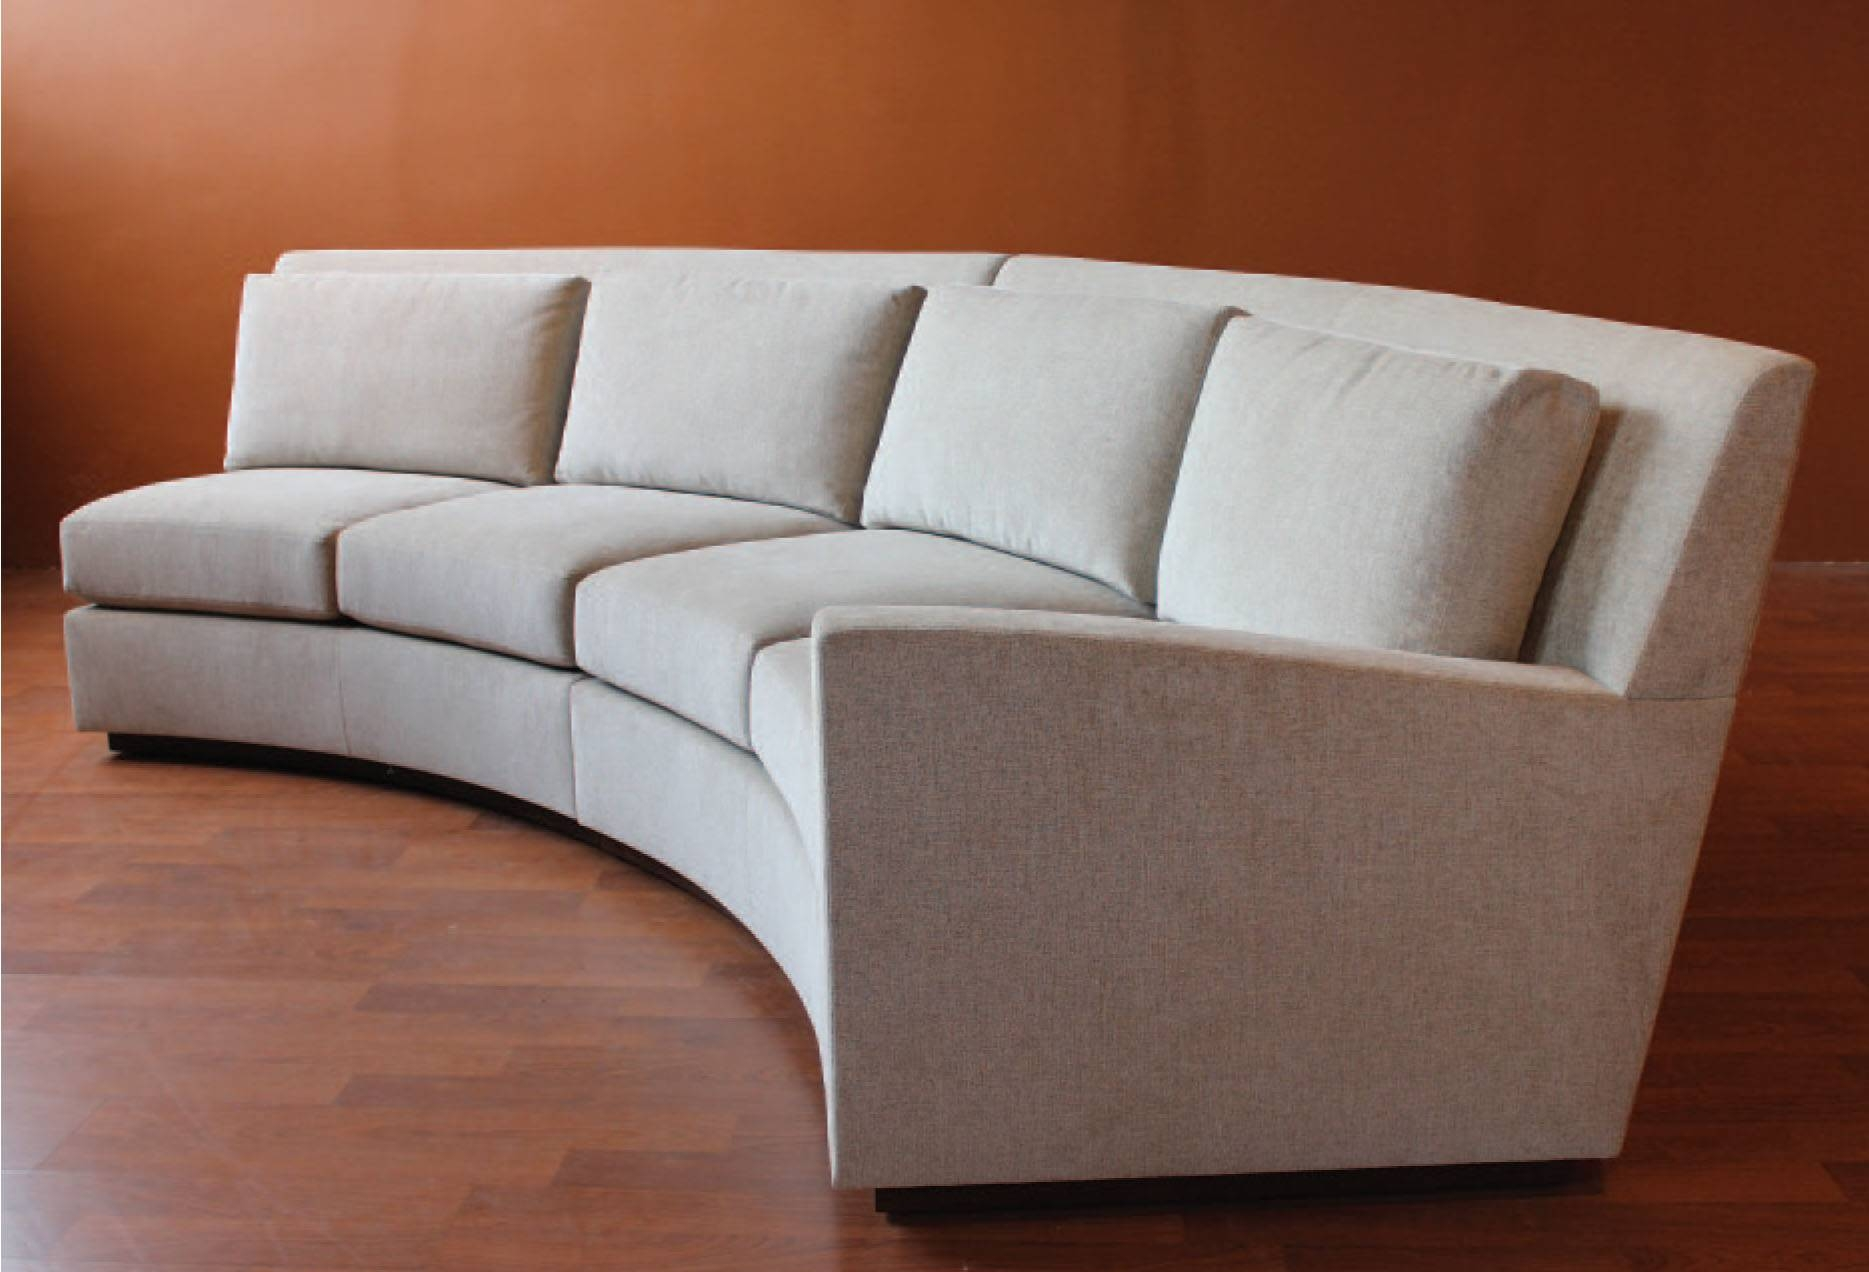 Sofa: Cool Couches For Provides A Warm To Comfortable Feel And Low With Circular Sectional Sofa (View 26 of 30)